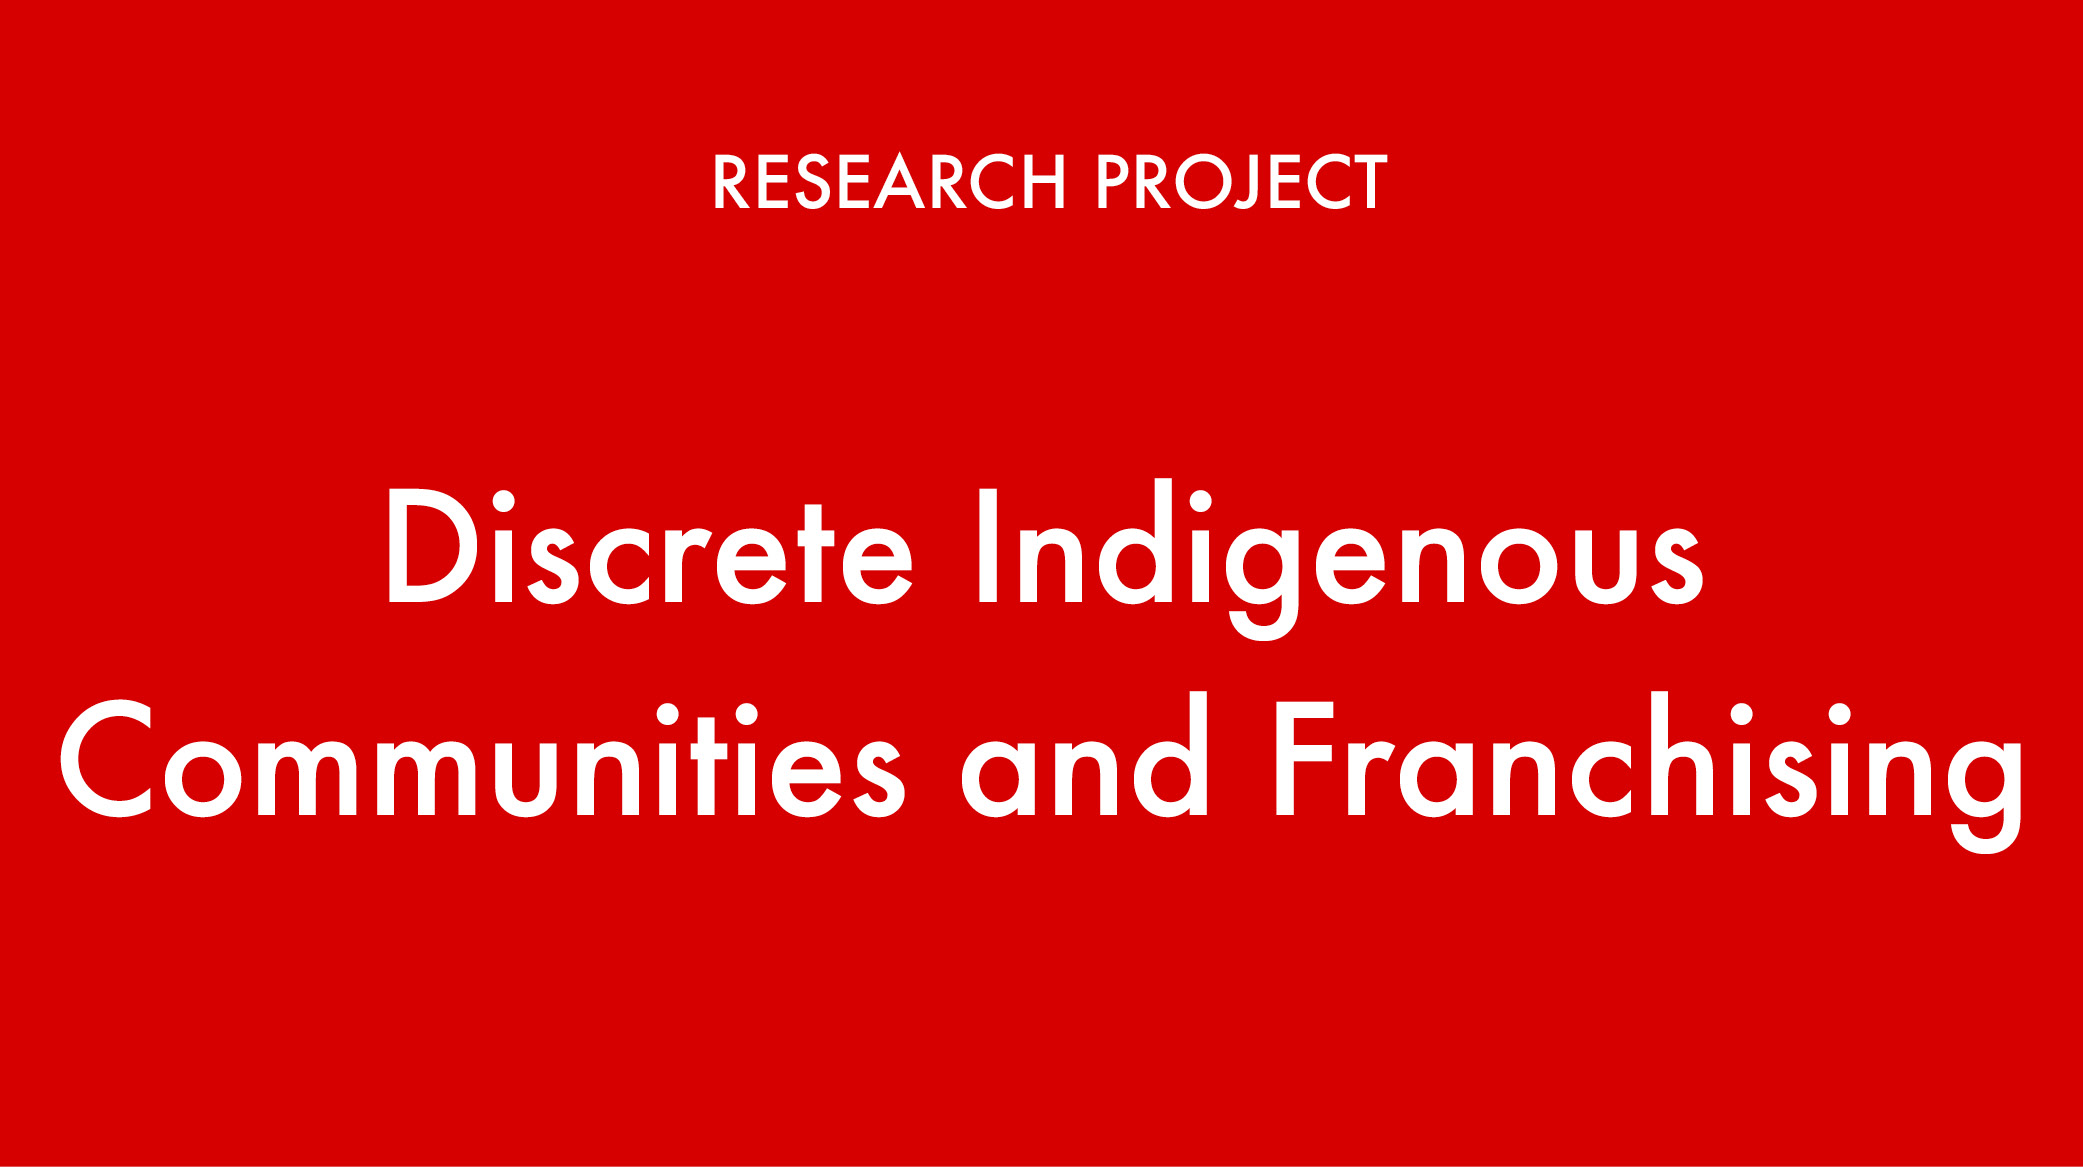 Button Discrete Communities1 - Indigenous Franchise Research